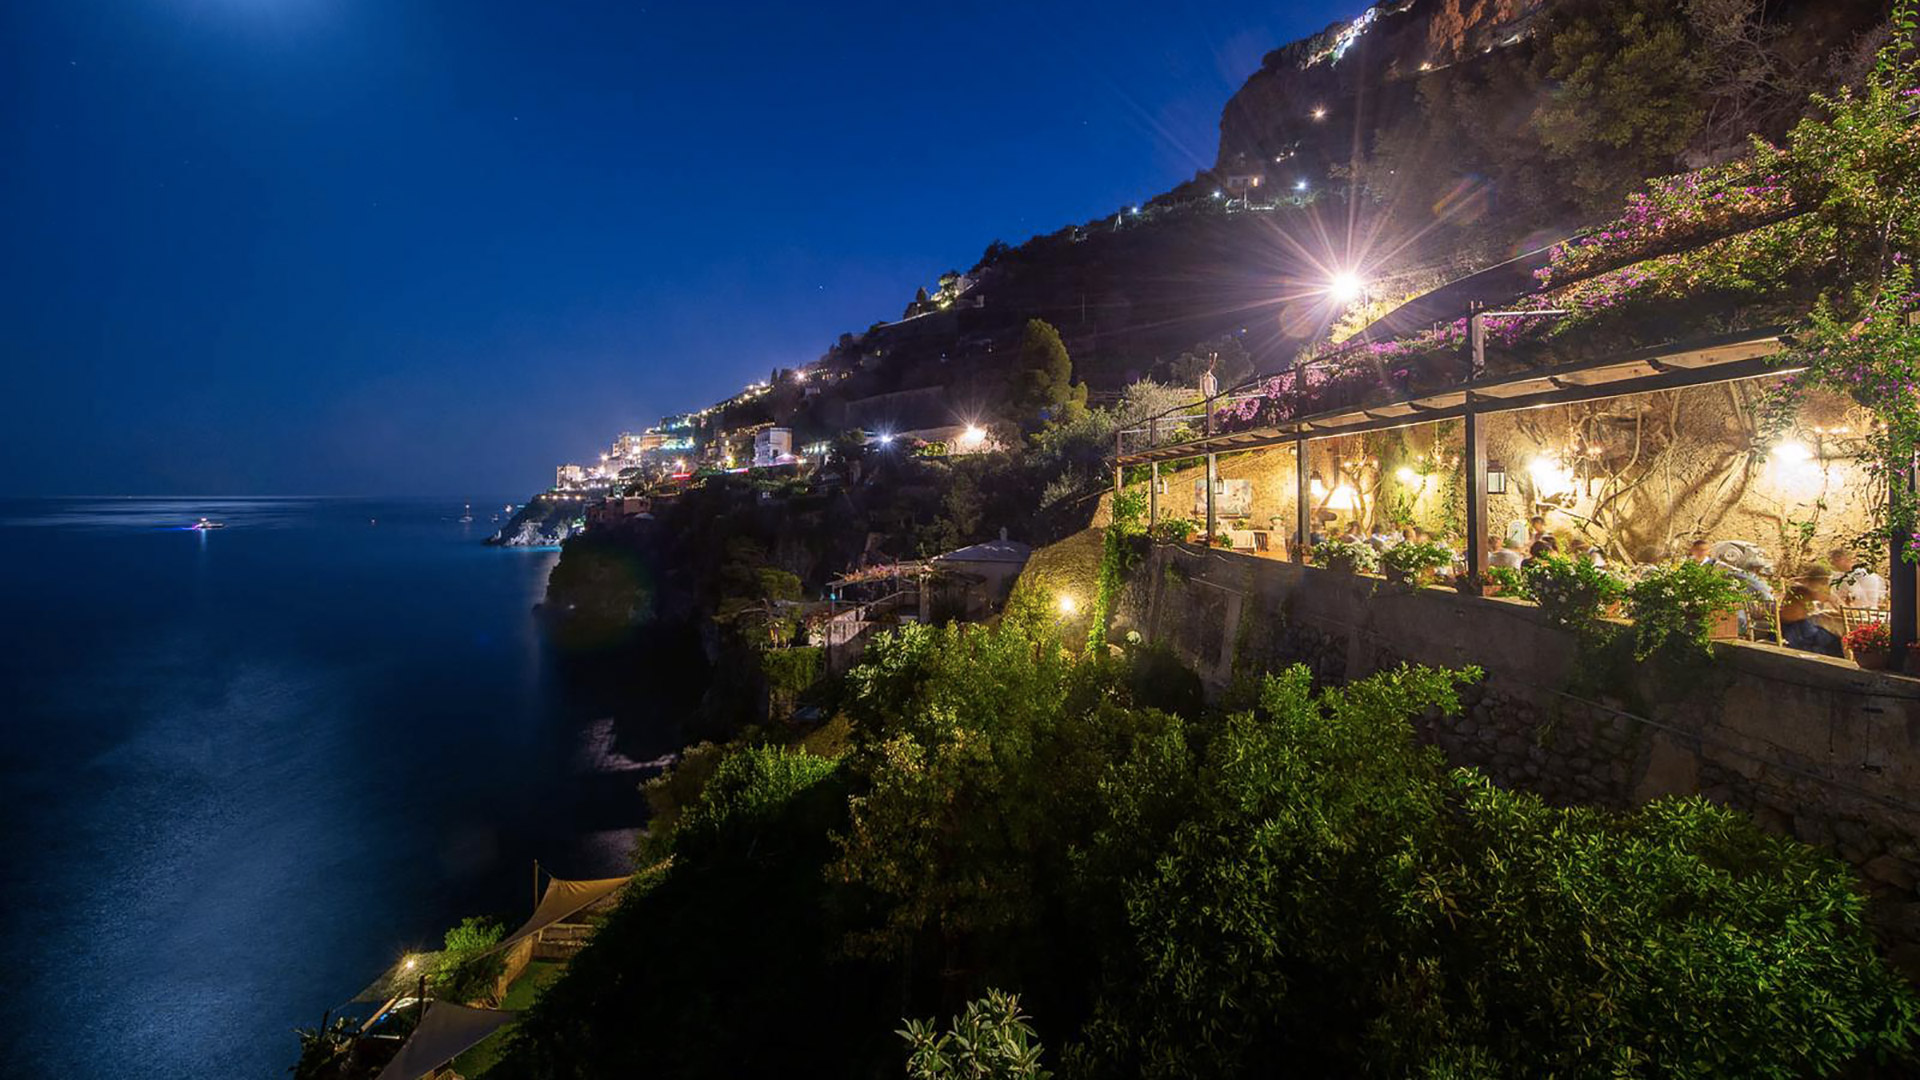 villa sgrosso dimora di mare night view